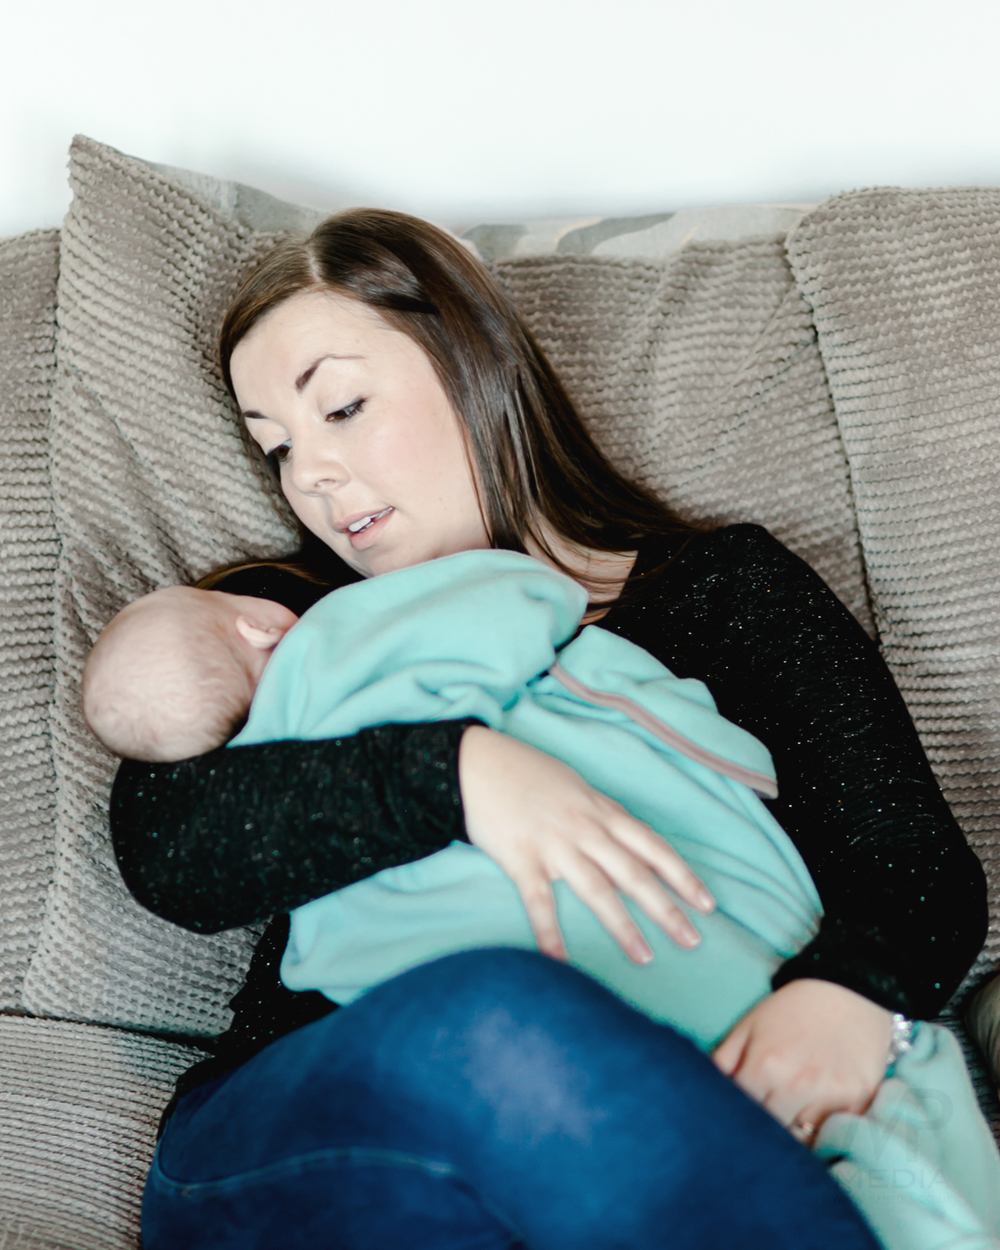 021 - Natalie Chris and Isabelle Family and Newborn Photography by MP Media www.mpmedia.co.uk -2.JPG